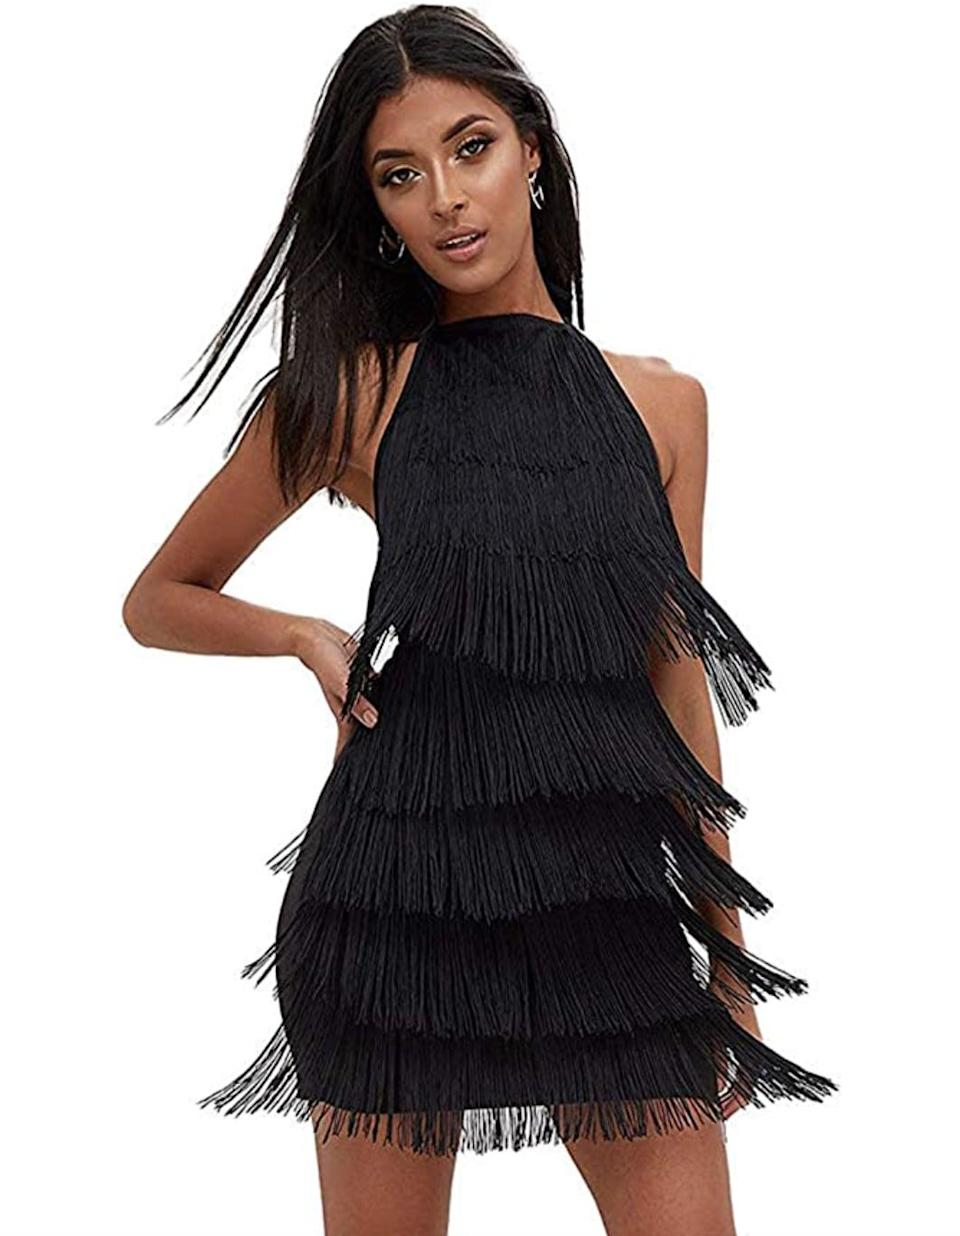 <p>Everyone will want to know where this retro and glam <span>L'VOW Tassels Strap Dress</span> ($30-$32) is from. Save it for the next themed party, and watch the compliments roll in.</p>